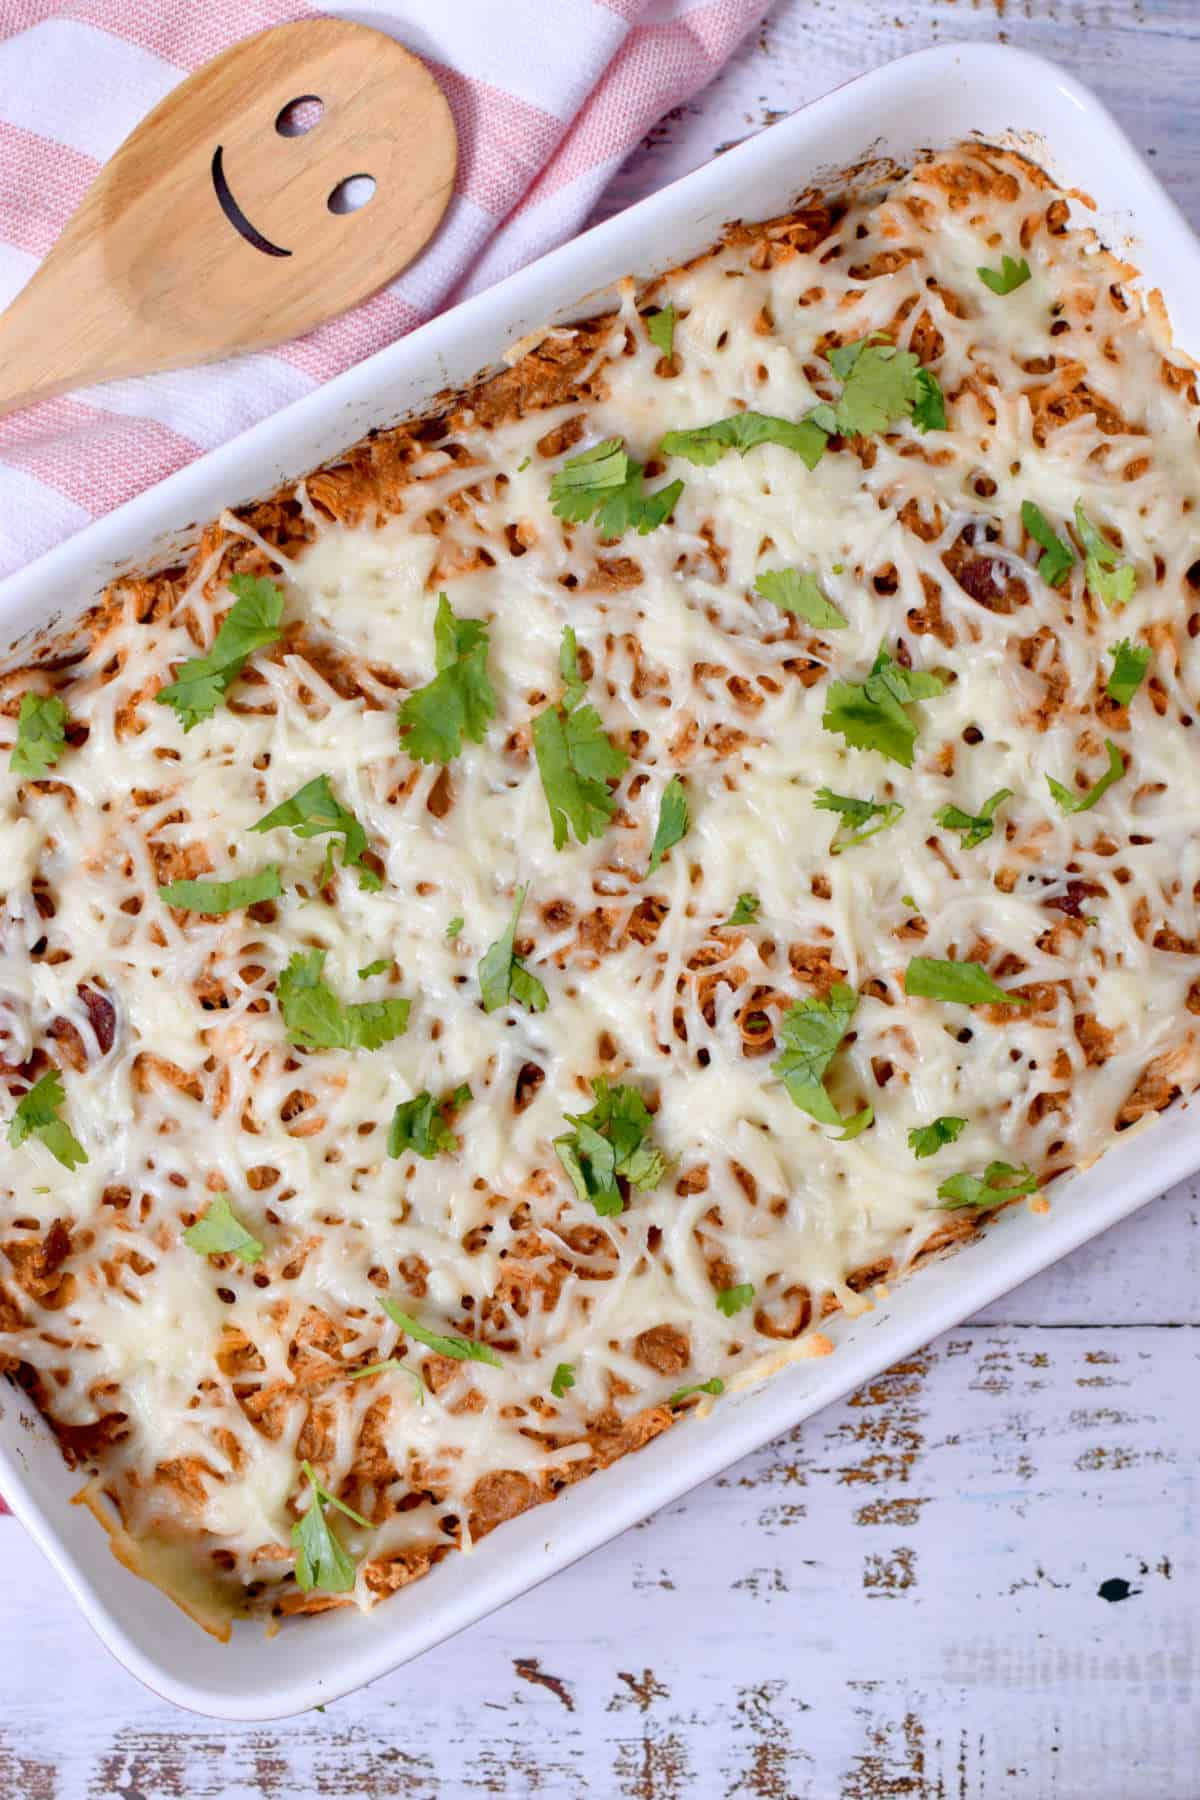 chicken and sweet potato casserole topped with cheese and parsley